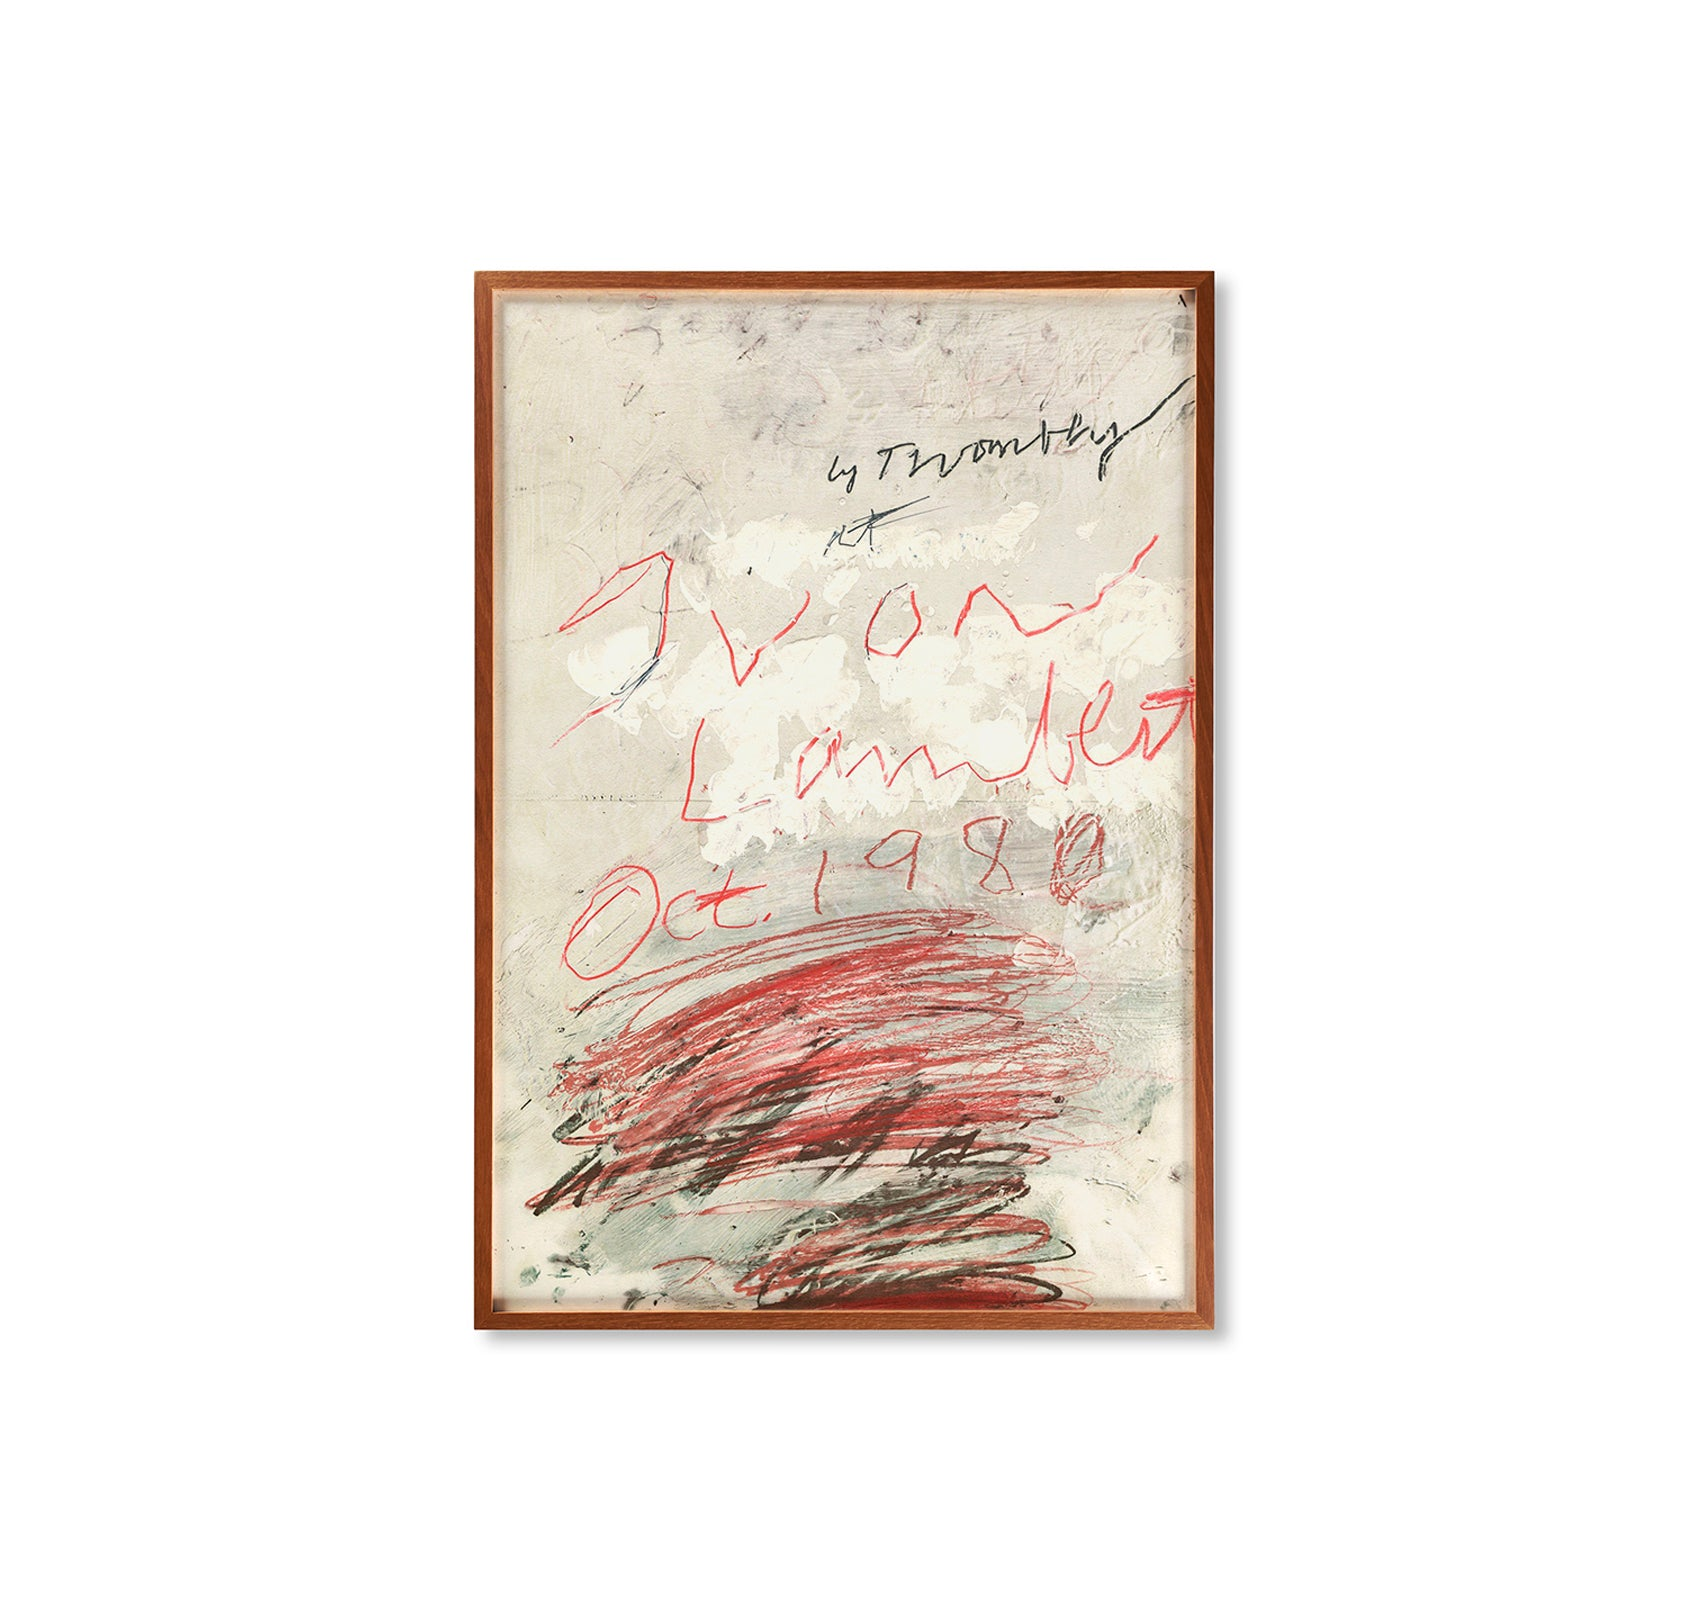 POSTER PROJECT (1980) by Cy Twombly